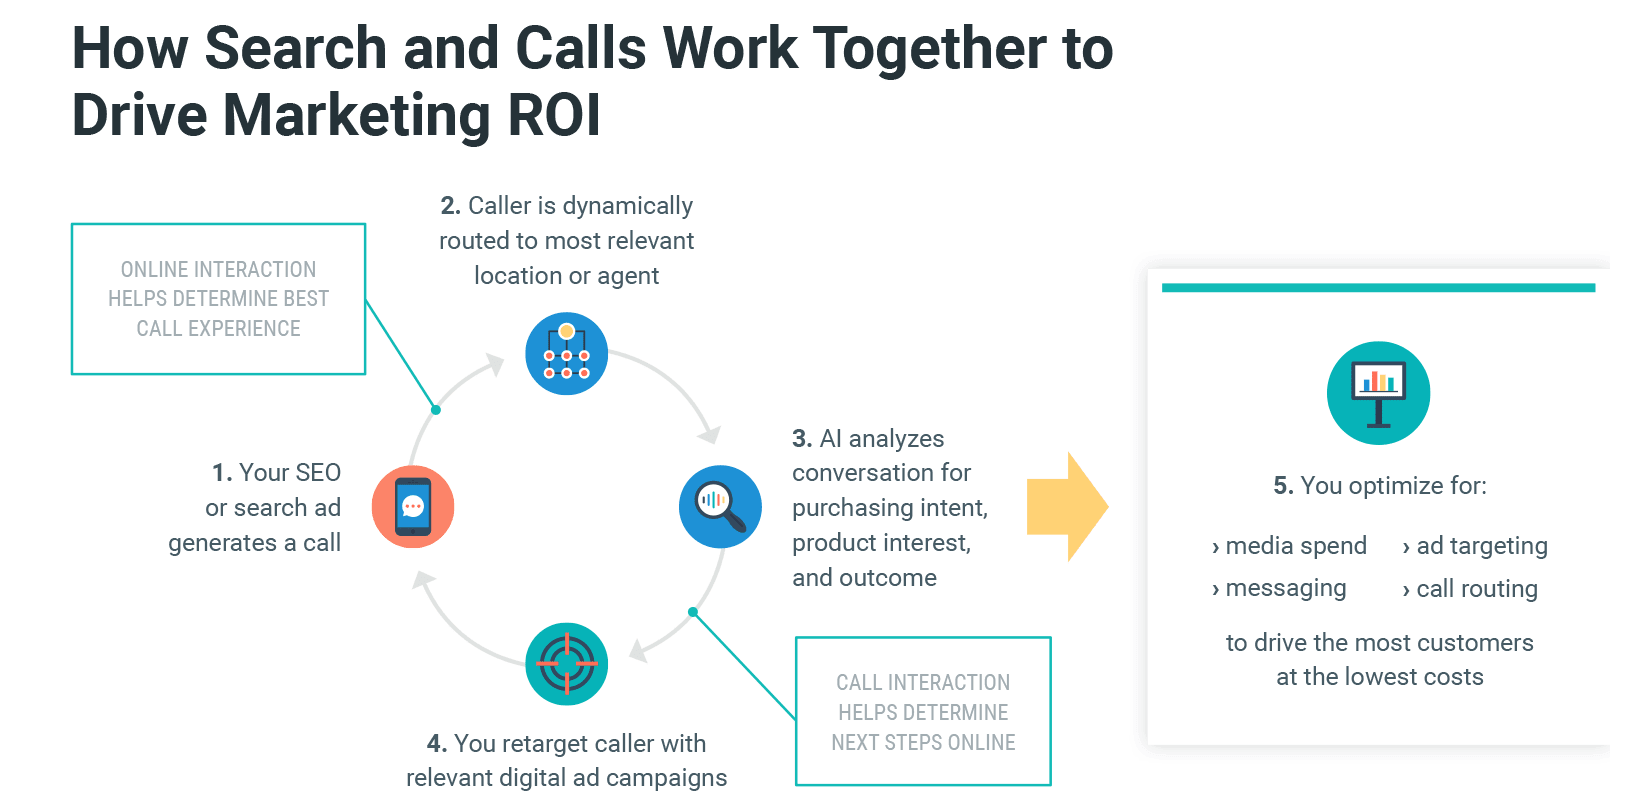 How search and calls work together to drive marketing ROI